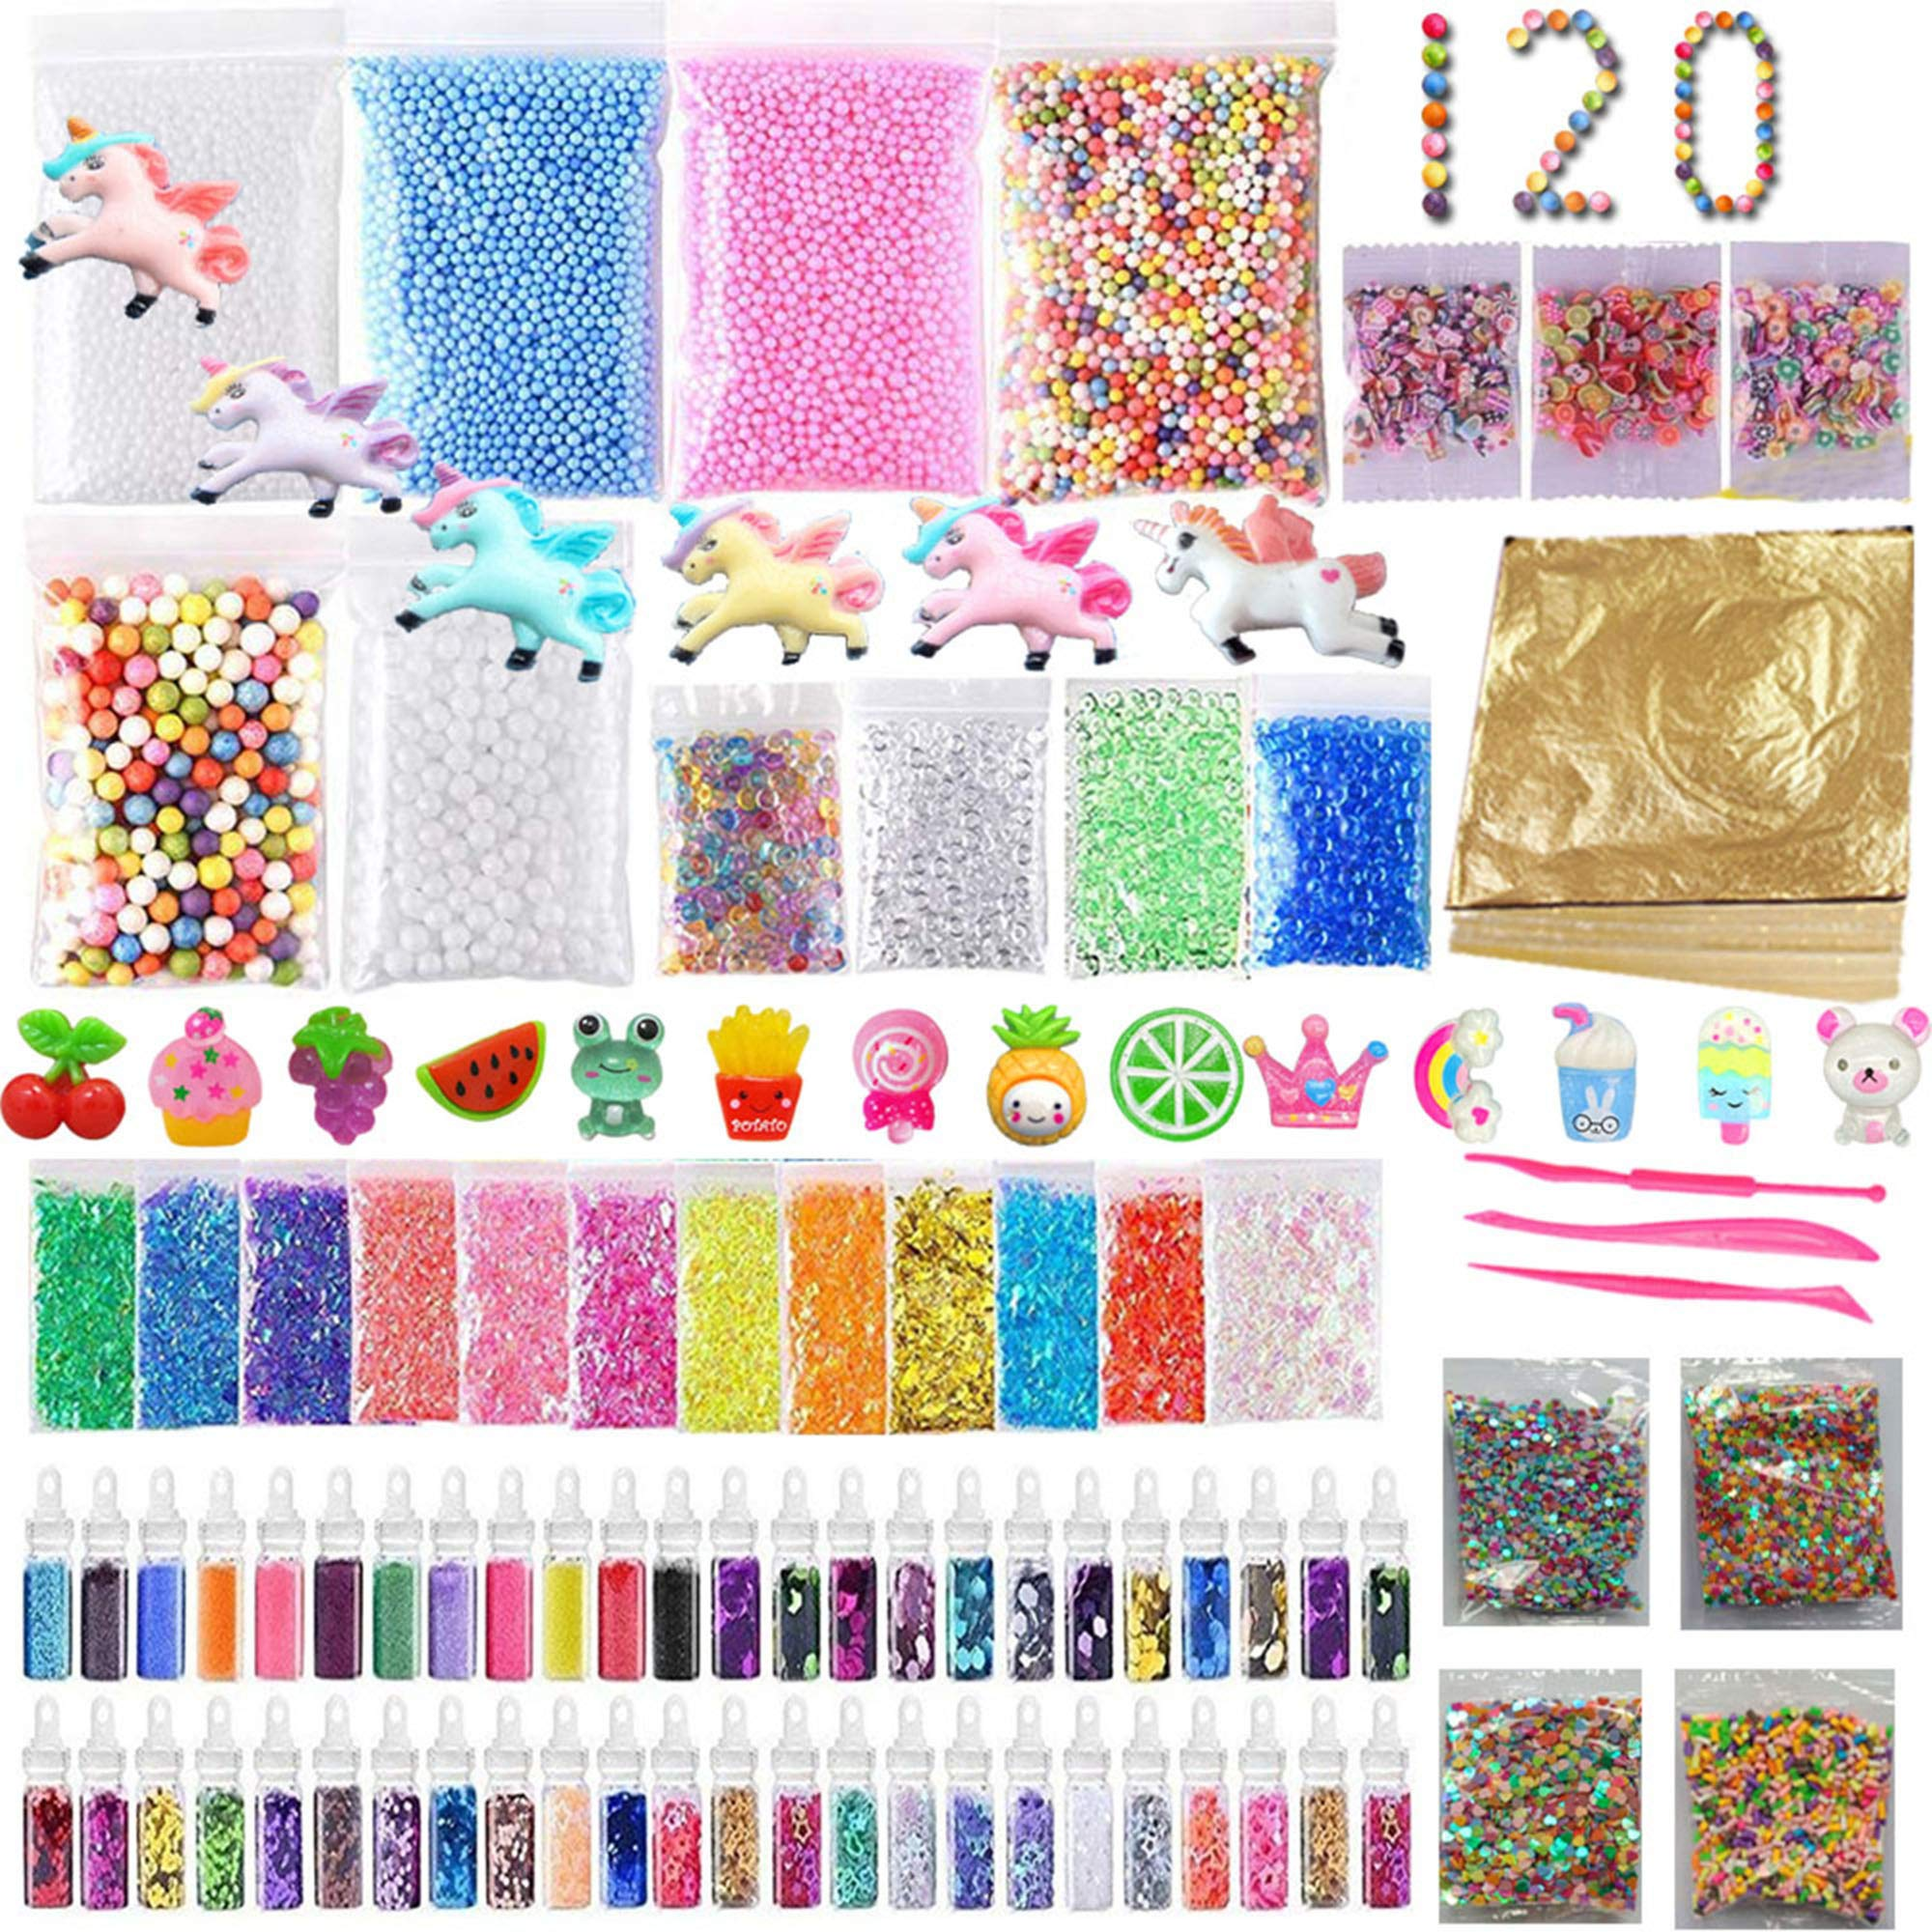 120 Pack Slime Making Kits Supplies,Gold Leaf,Foam Balls,Glitter Shake Jars,Fishbowl Beads,Fruit Slices,Fake Sprinkles,Glitter Sequins Accessories, Sugar Papers (Slime Kits)